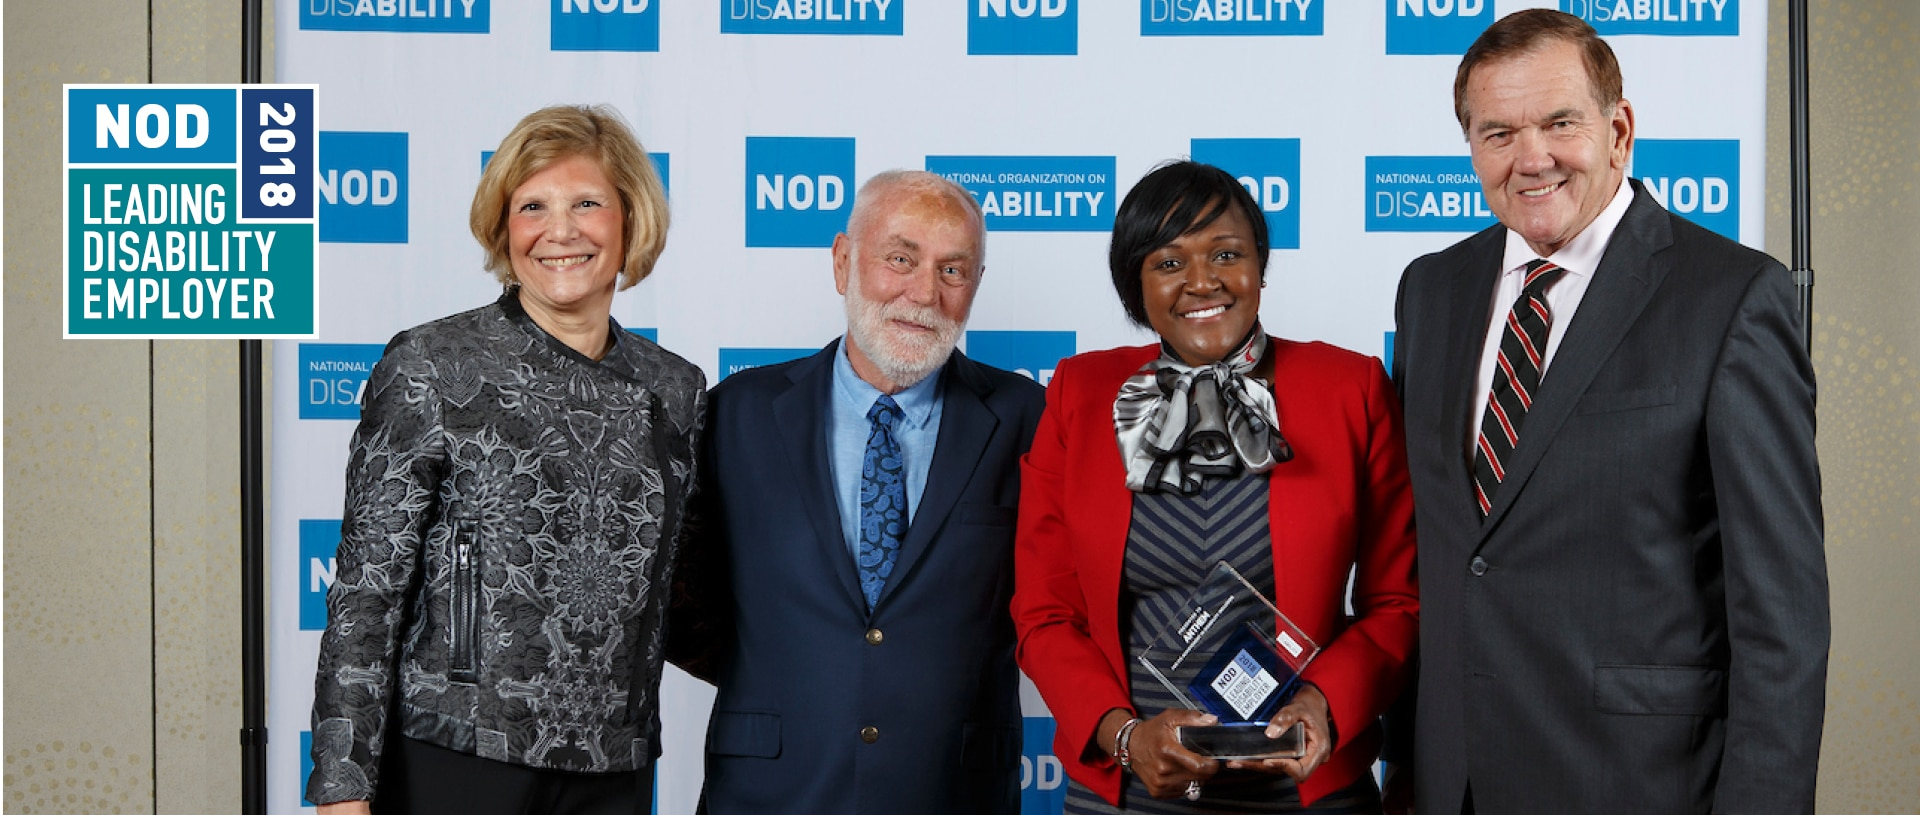 Leading Disability Employer Seal with photo of winners celebrating